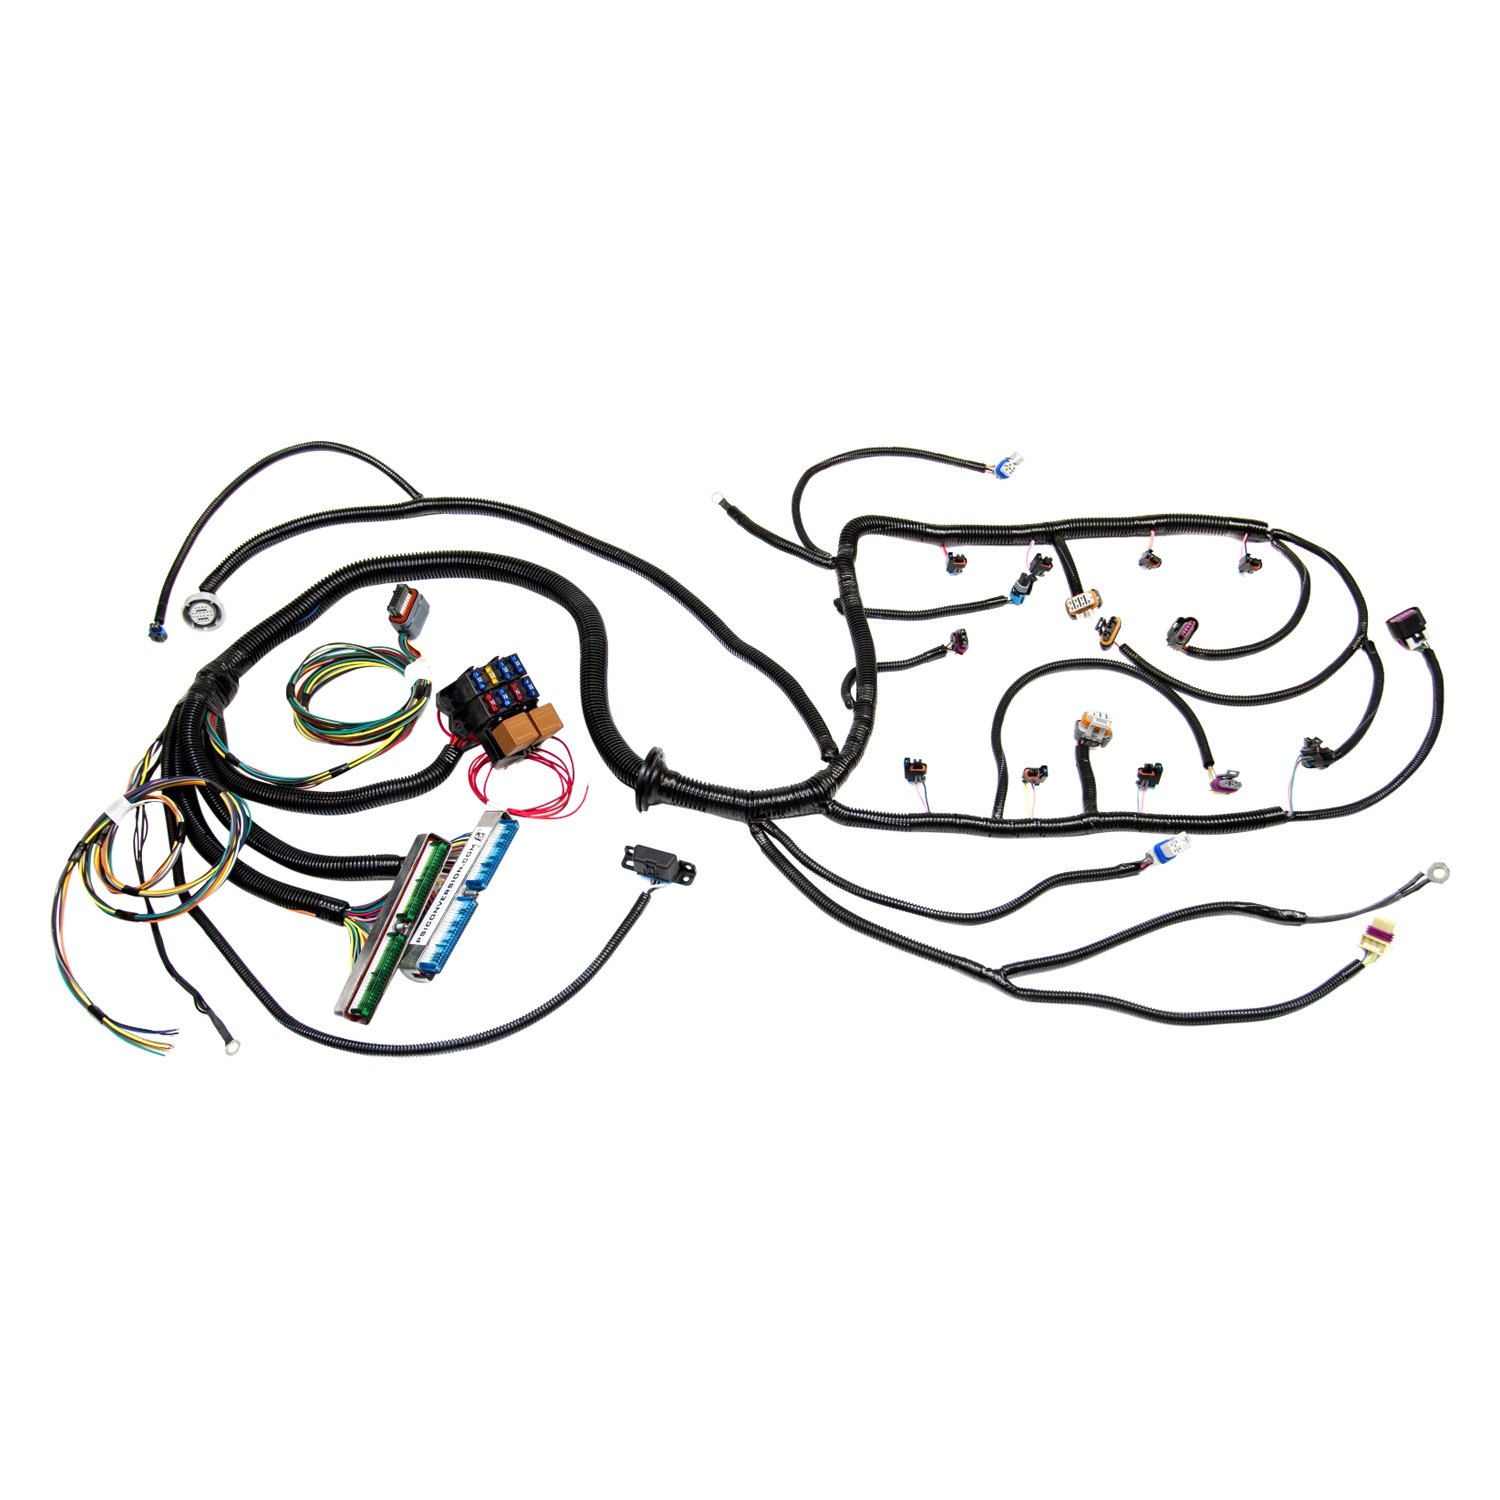 psi wiring harness reviews